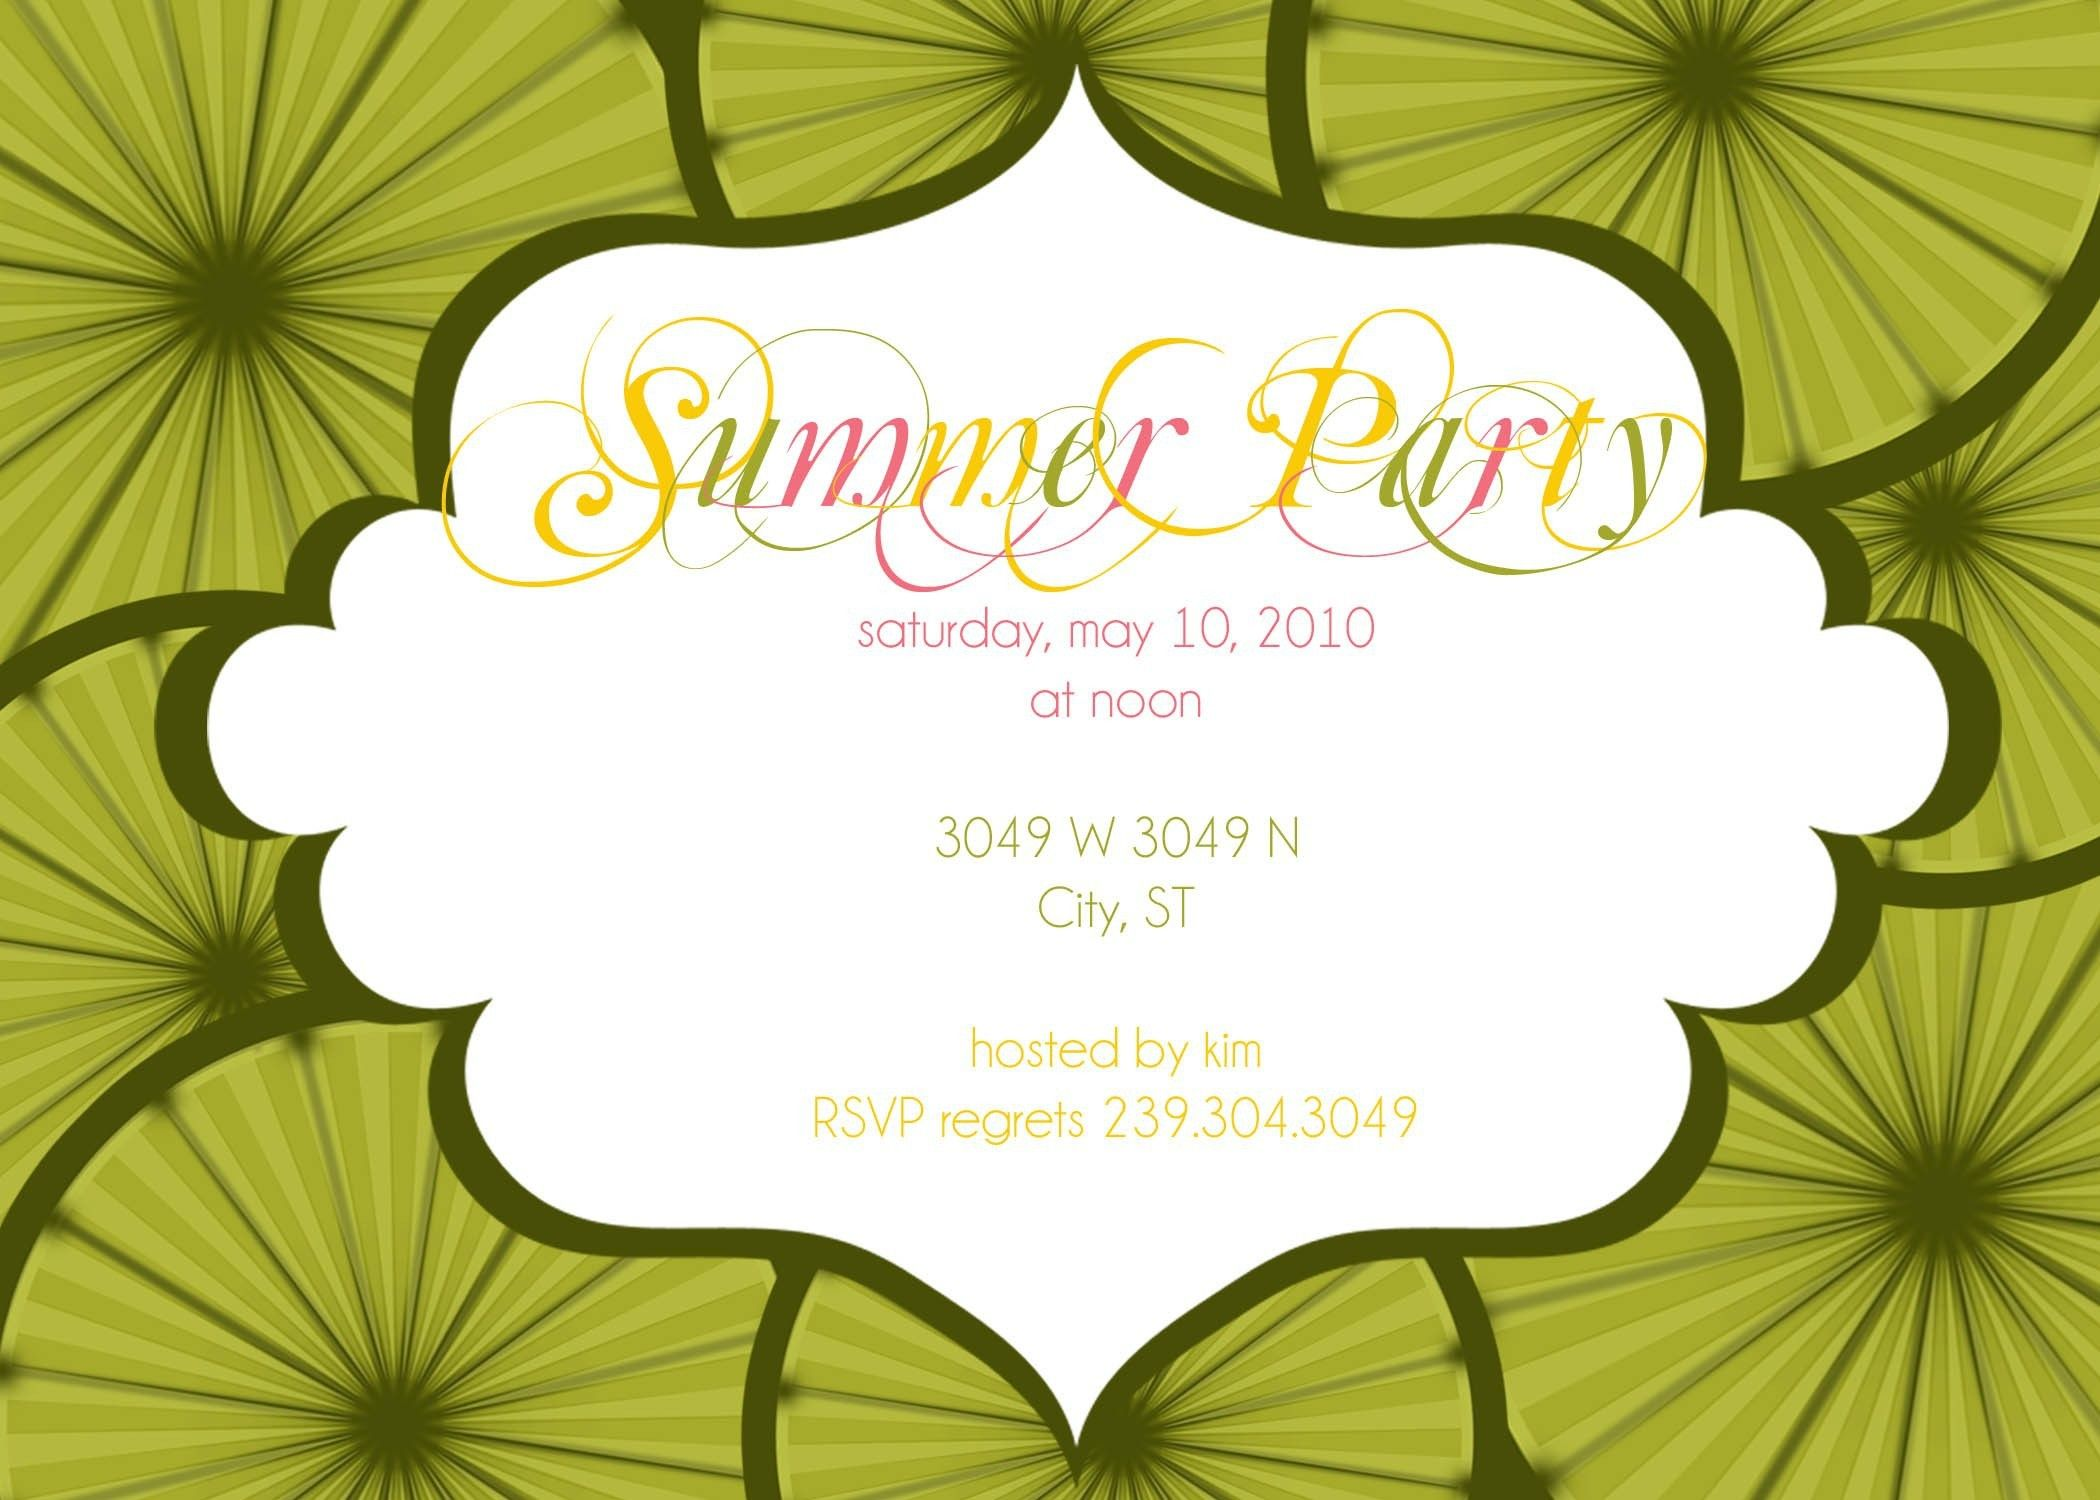 summer party invitation wording samples invitations card summer party invitation wording samples